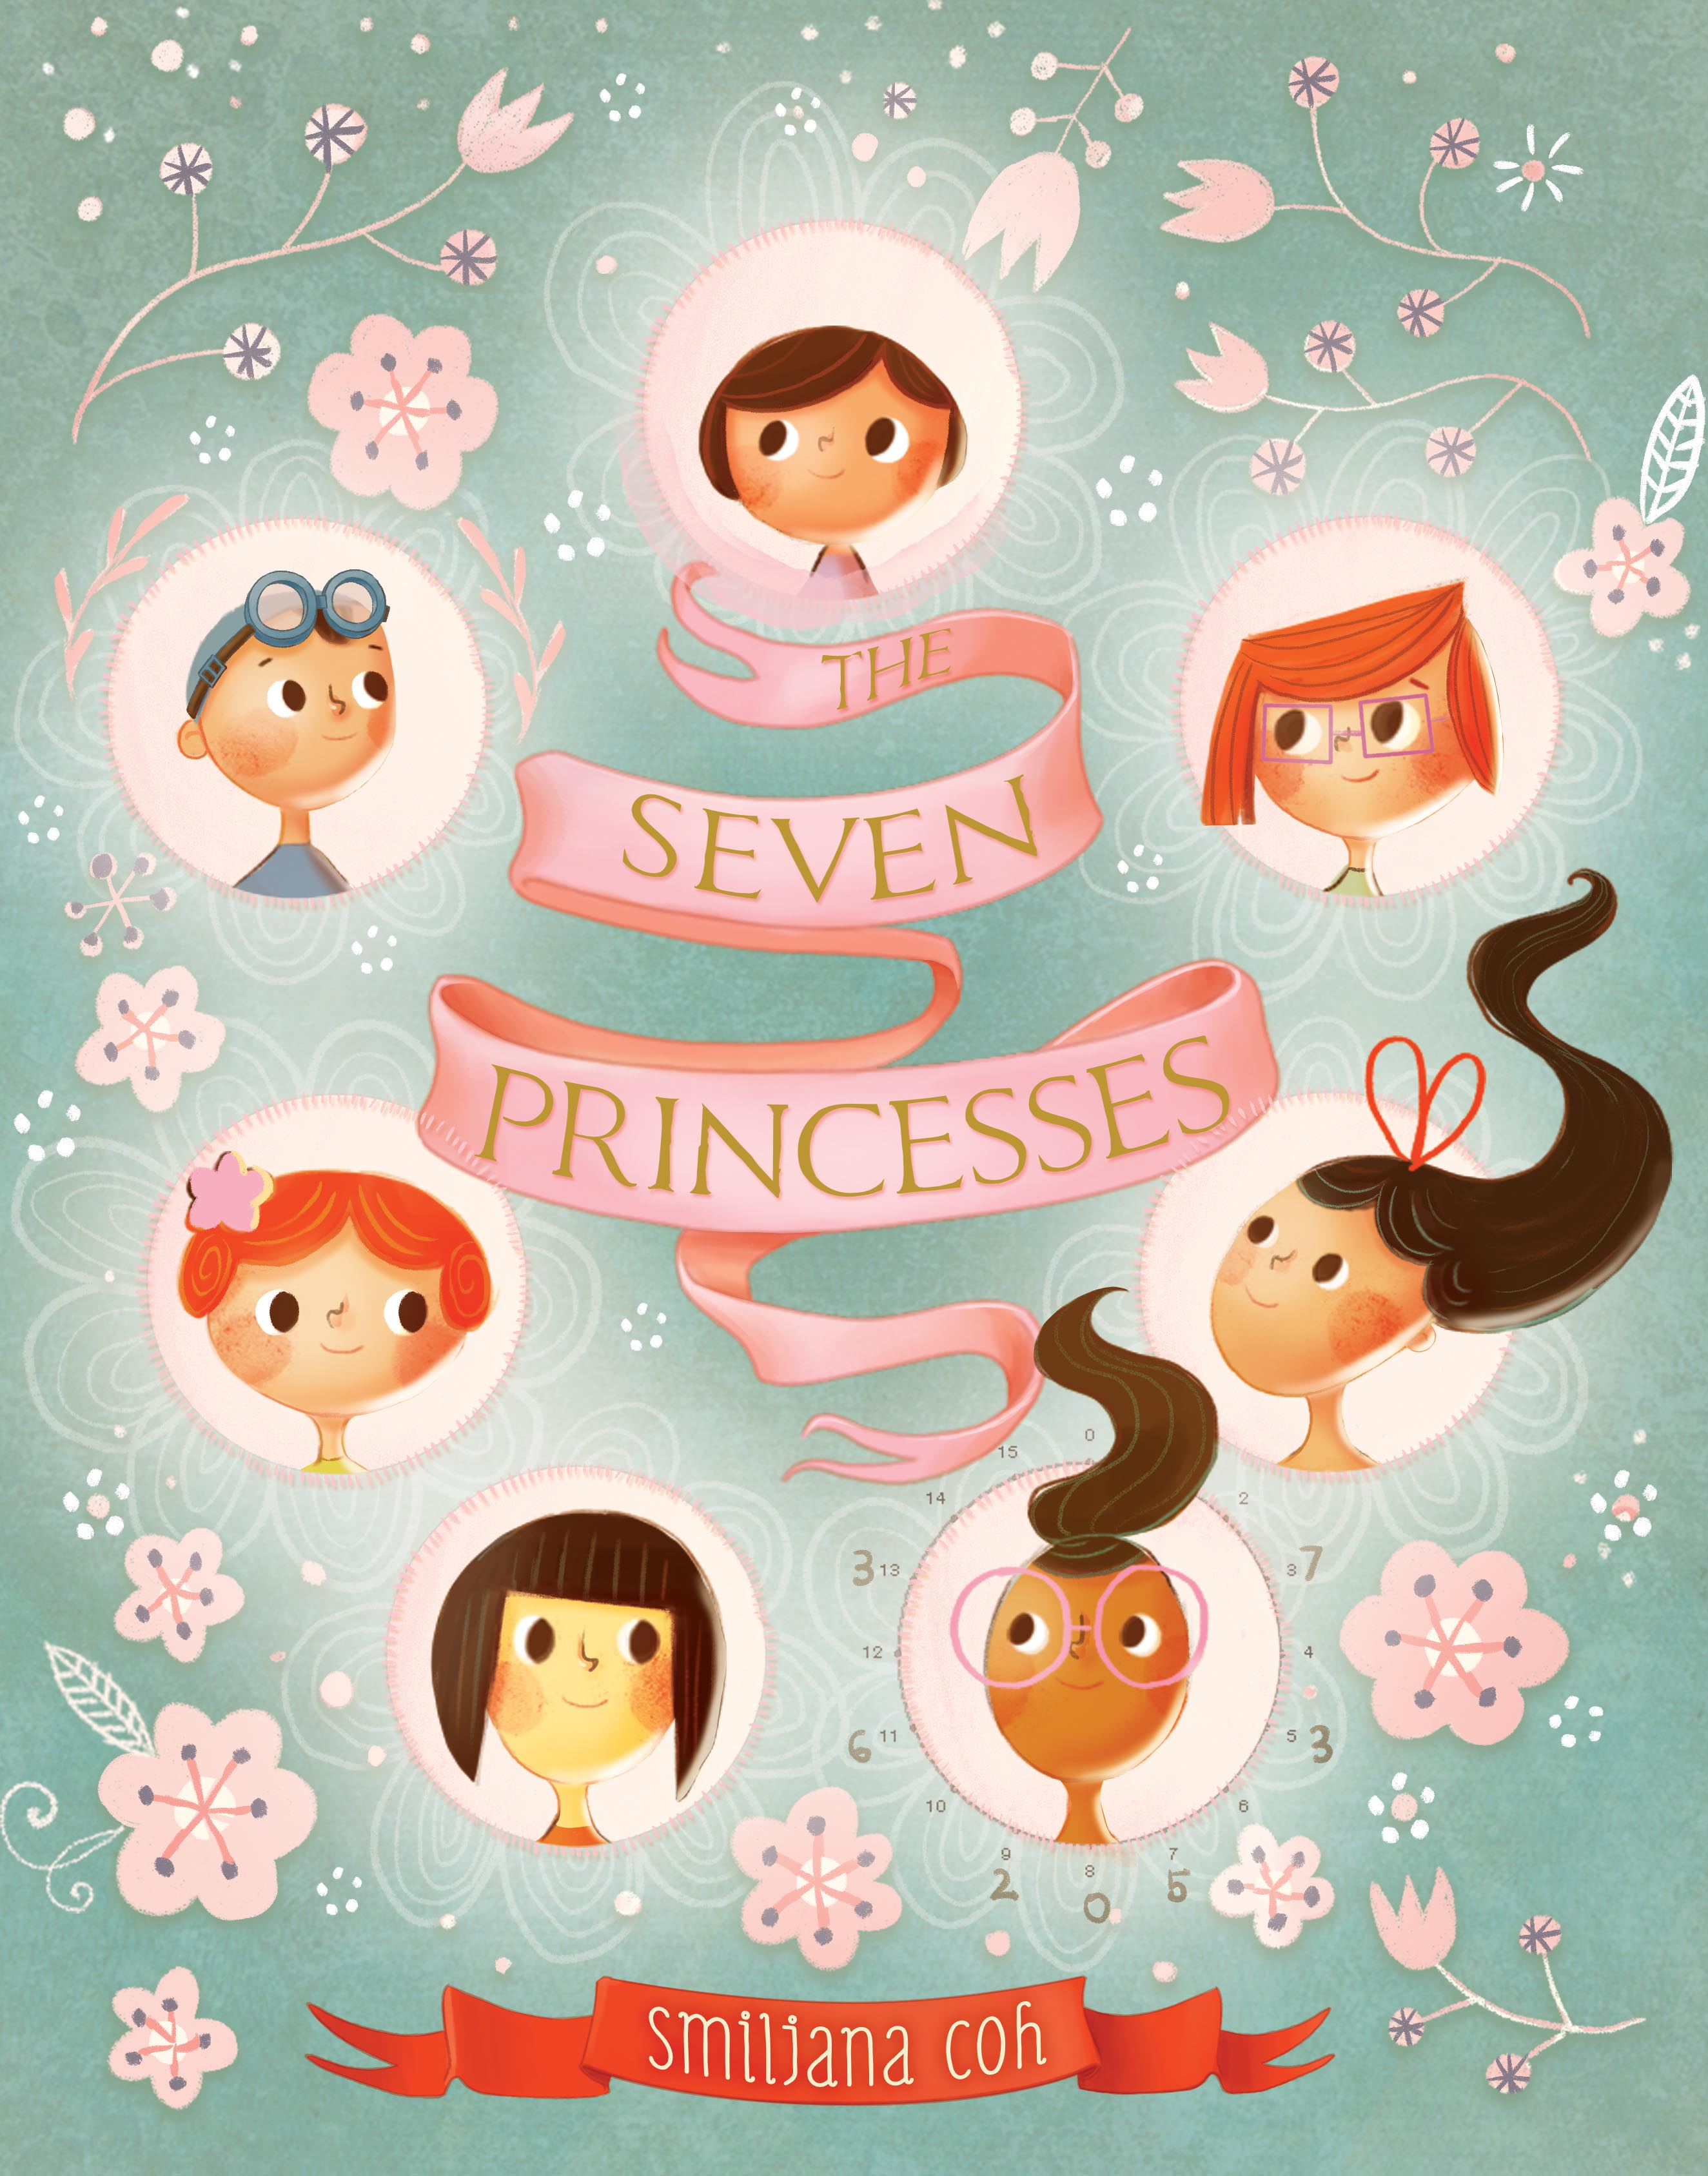 The Seven Princesses